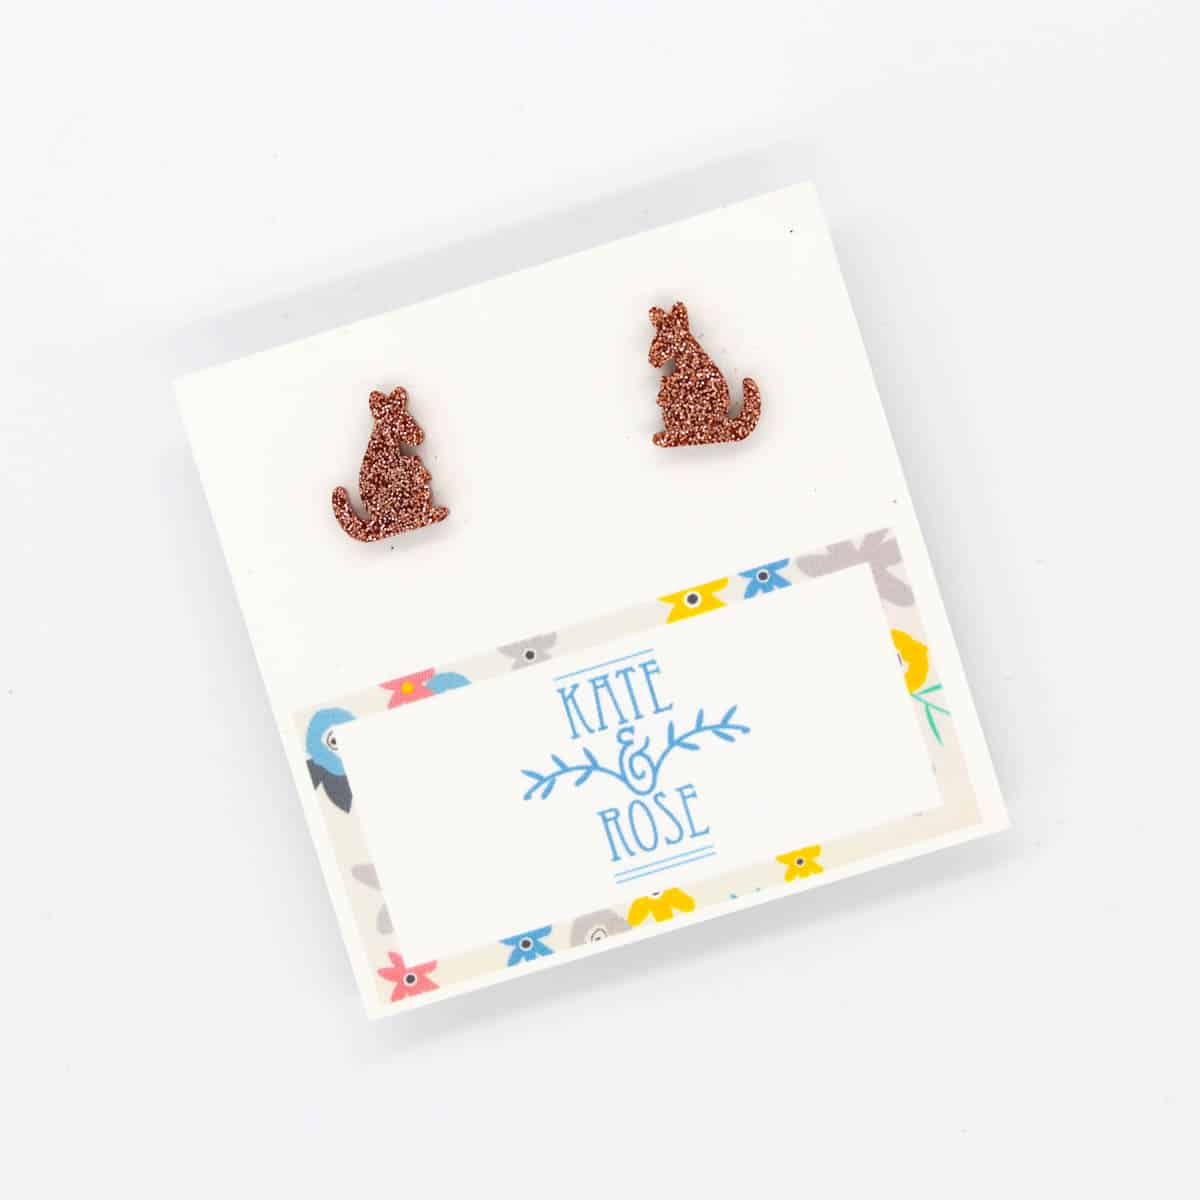 Bronze Acrylic Kangaroo Earrings By Kate And Rose $14.95